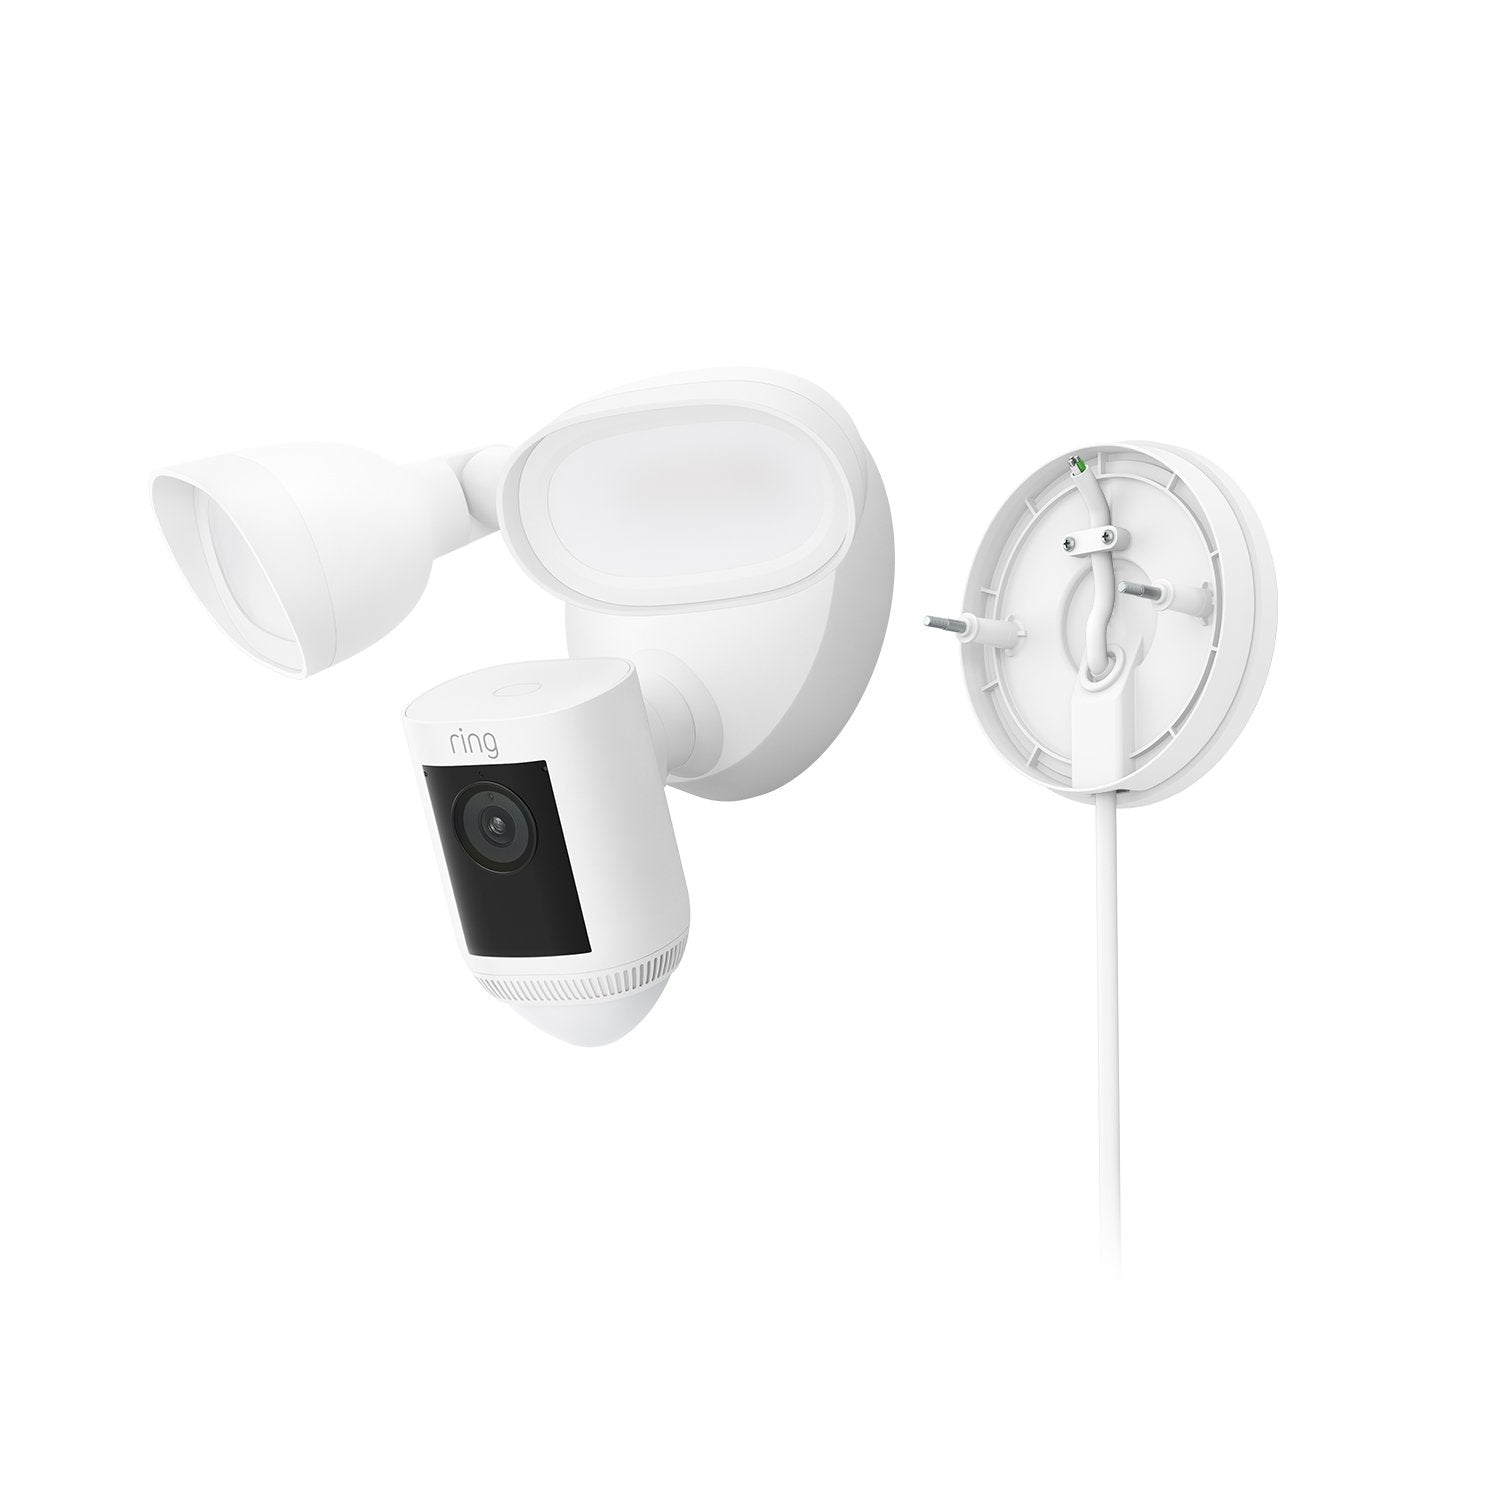 Plug-In Mount for Cams (for Floodlight Cam Wired Pro and Floodlight Cam Wired Plus) - White